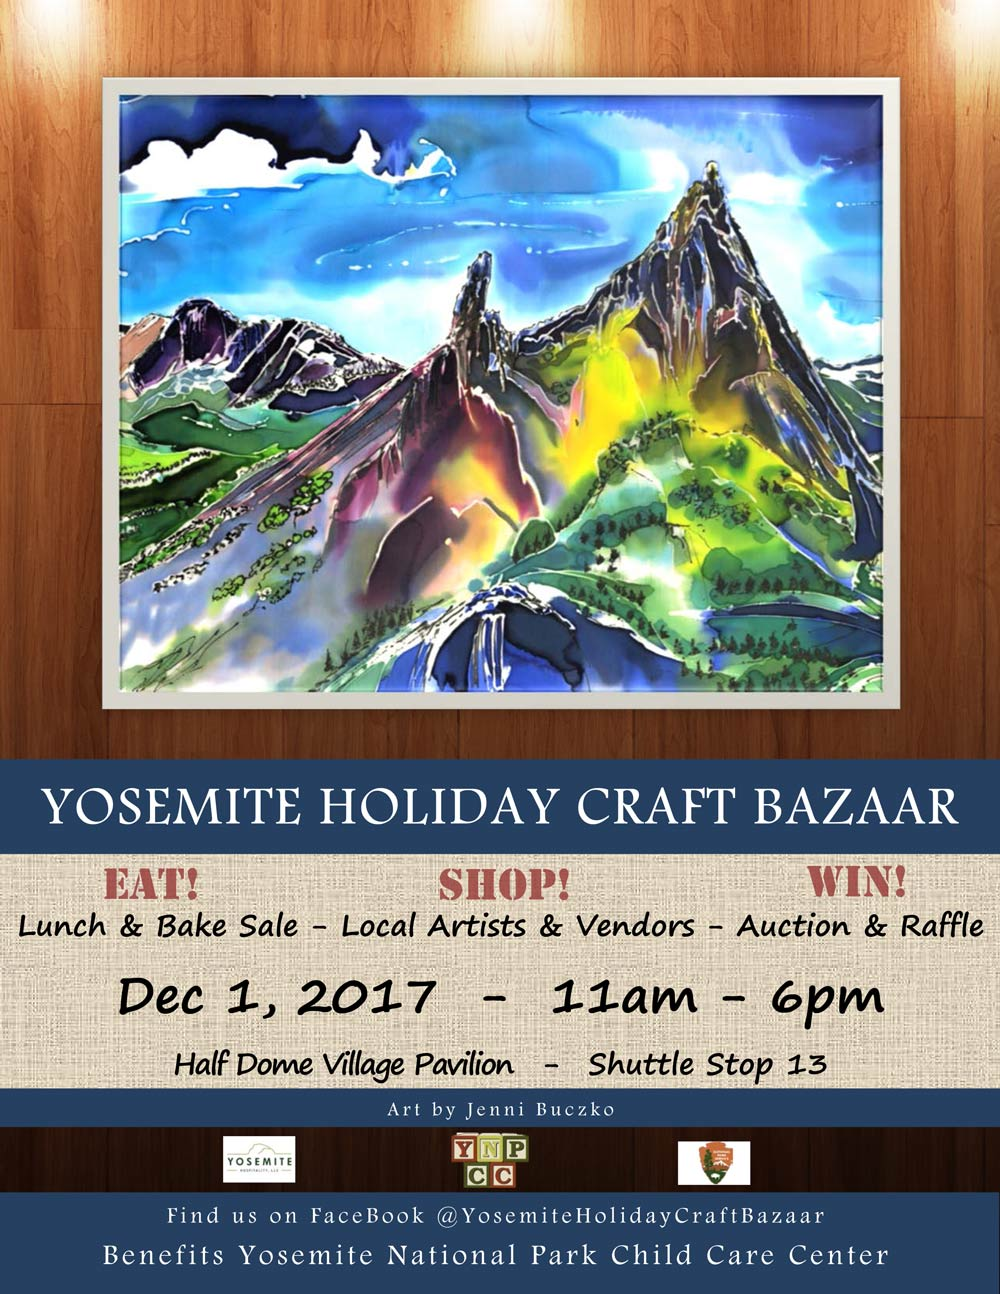 12 1 17 Yosemite Holiday Craft Bazaar